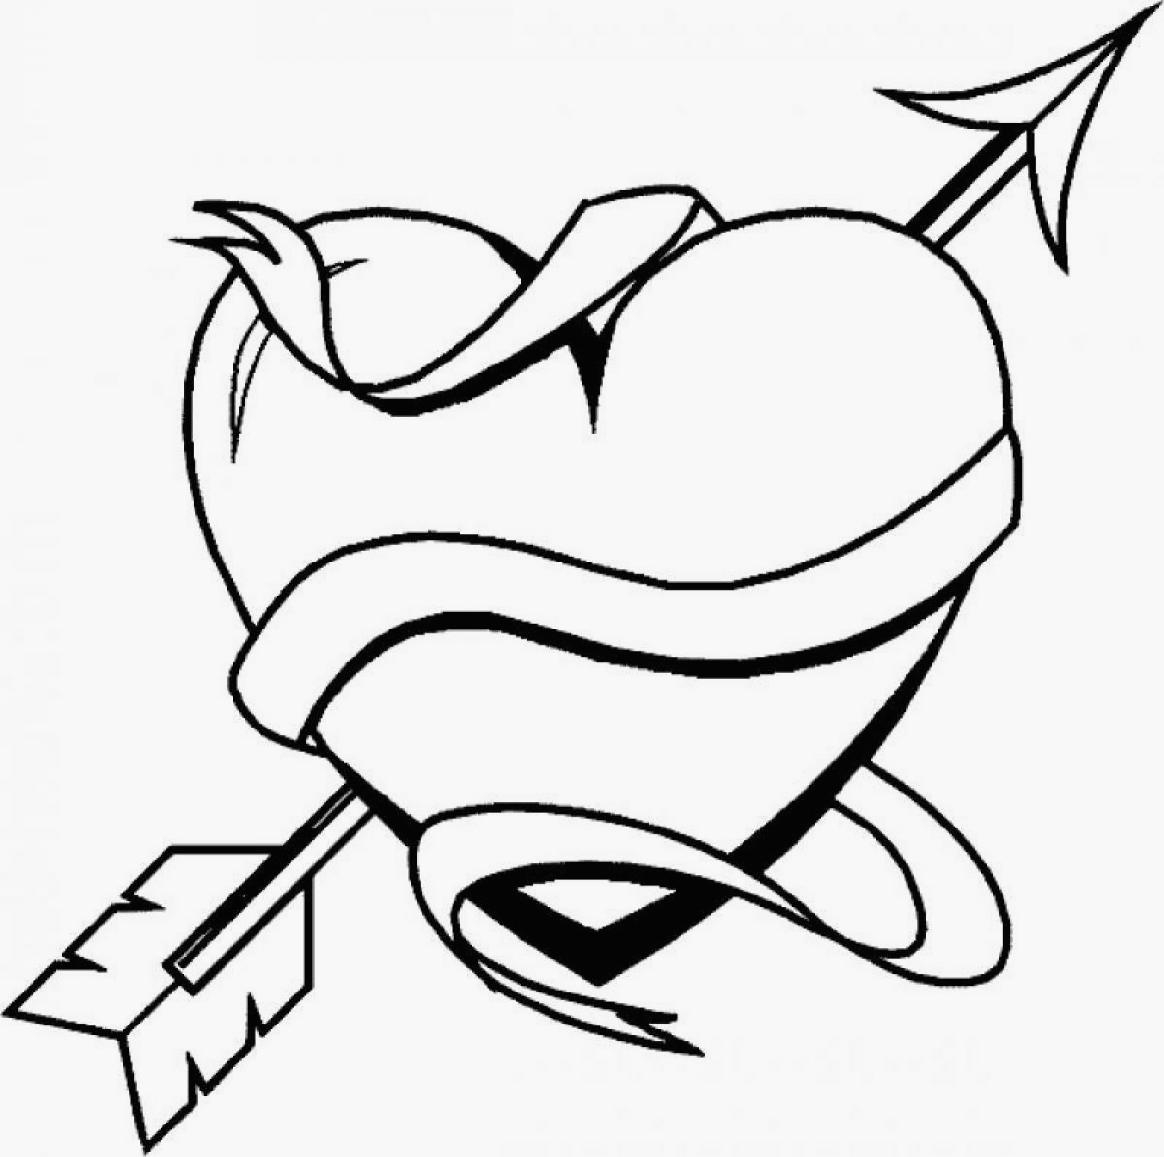 1164x1157 Fresh Bow And Arrow Coloring Pages Gallery Free Coloring Book